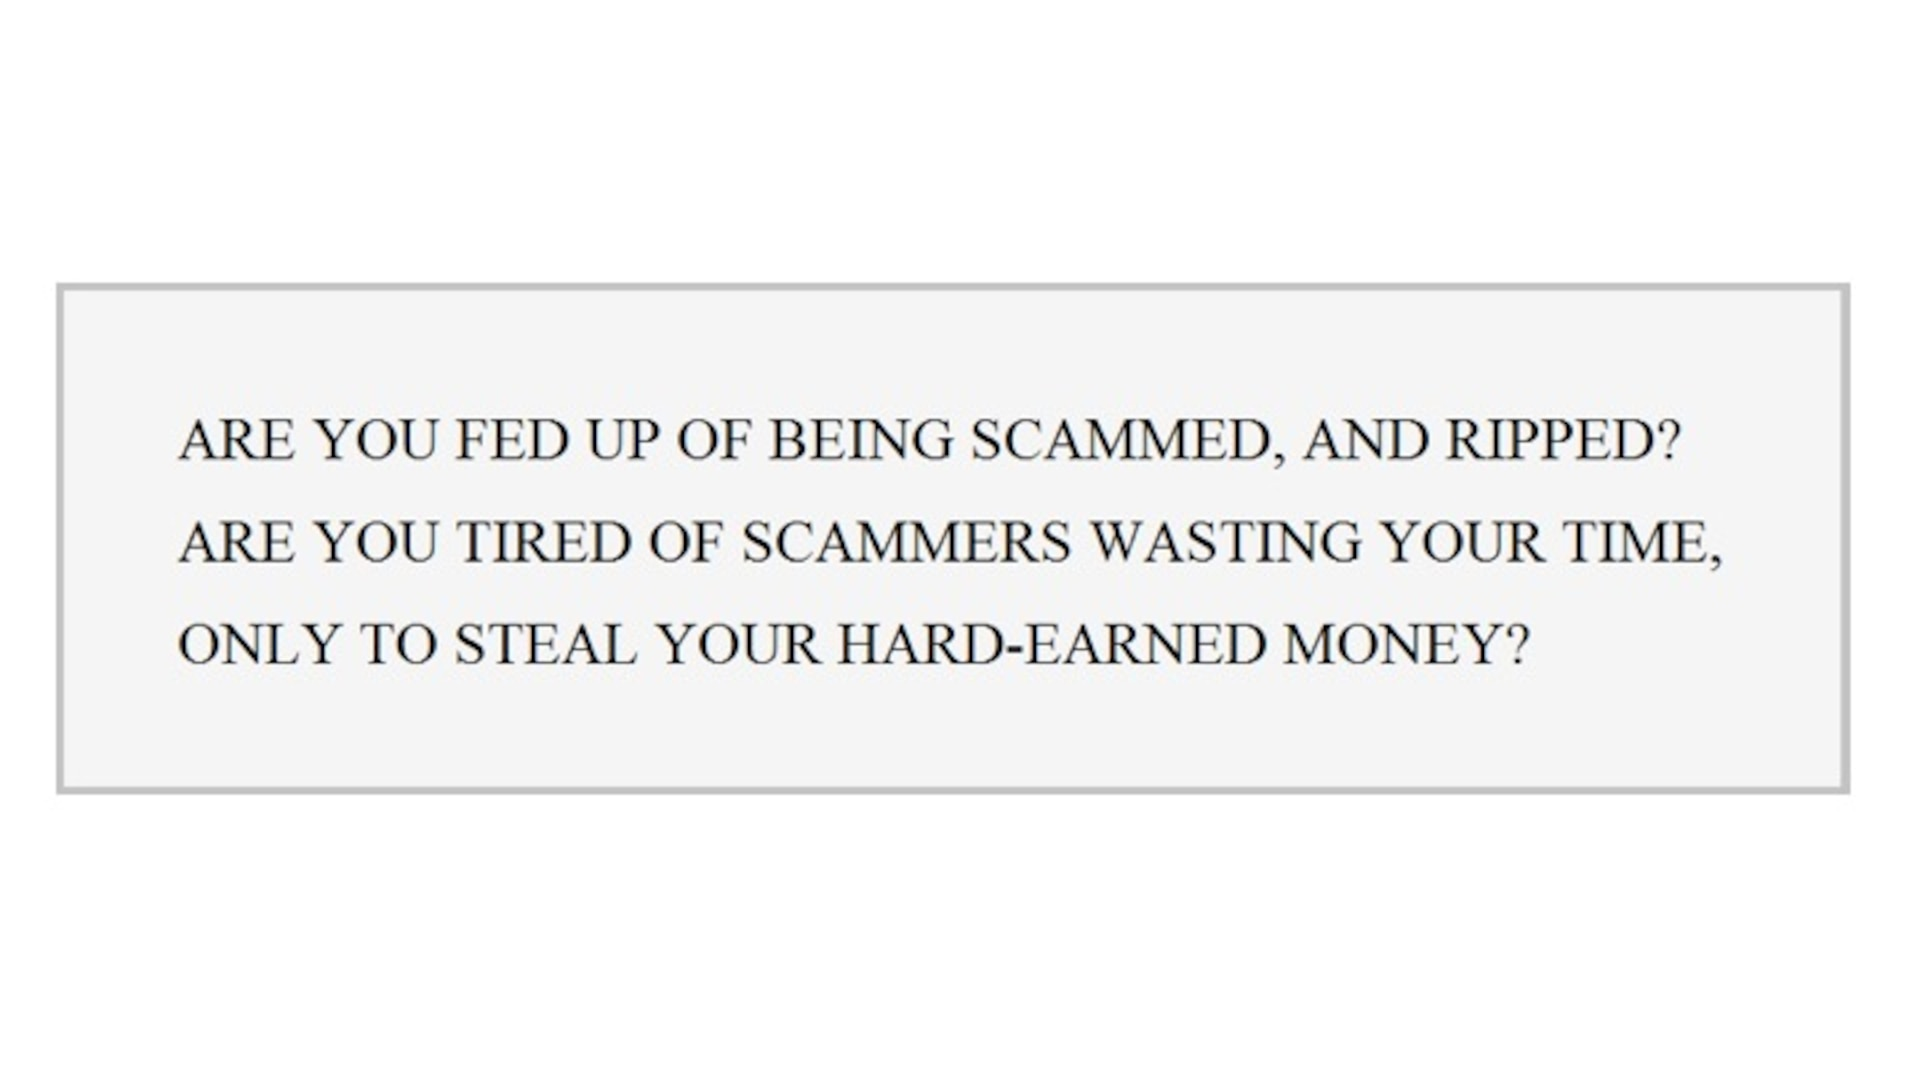 There will always be suspicions about the validity of the products for sale, as many individuals have paid for stolen financial data, only to not receive what they expected. One seller refers to this dishonor among thieves within their opening pitch: